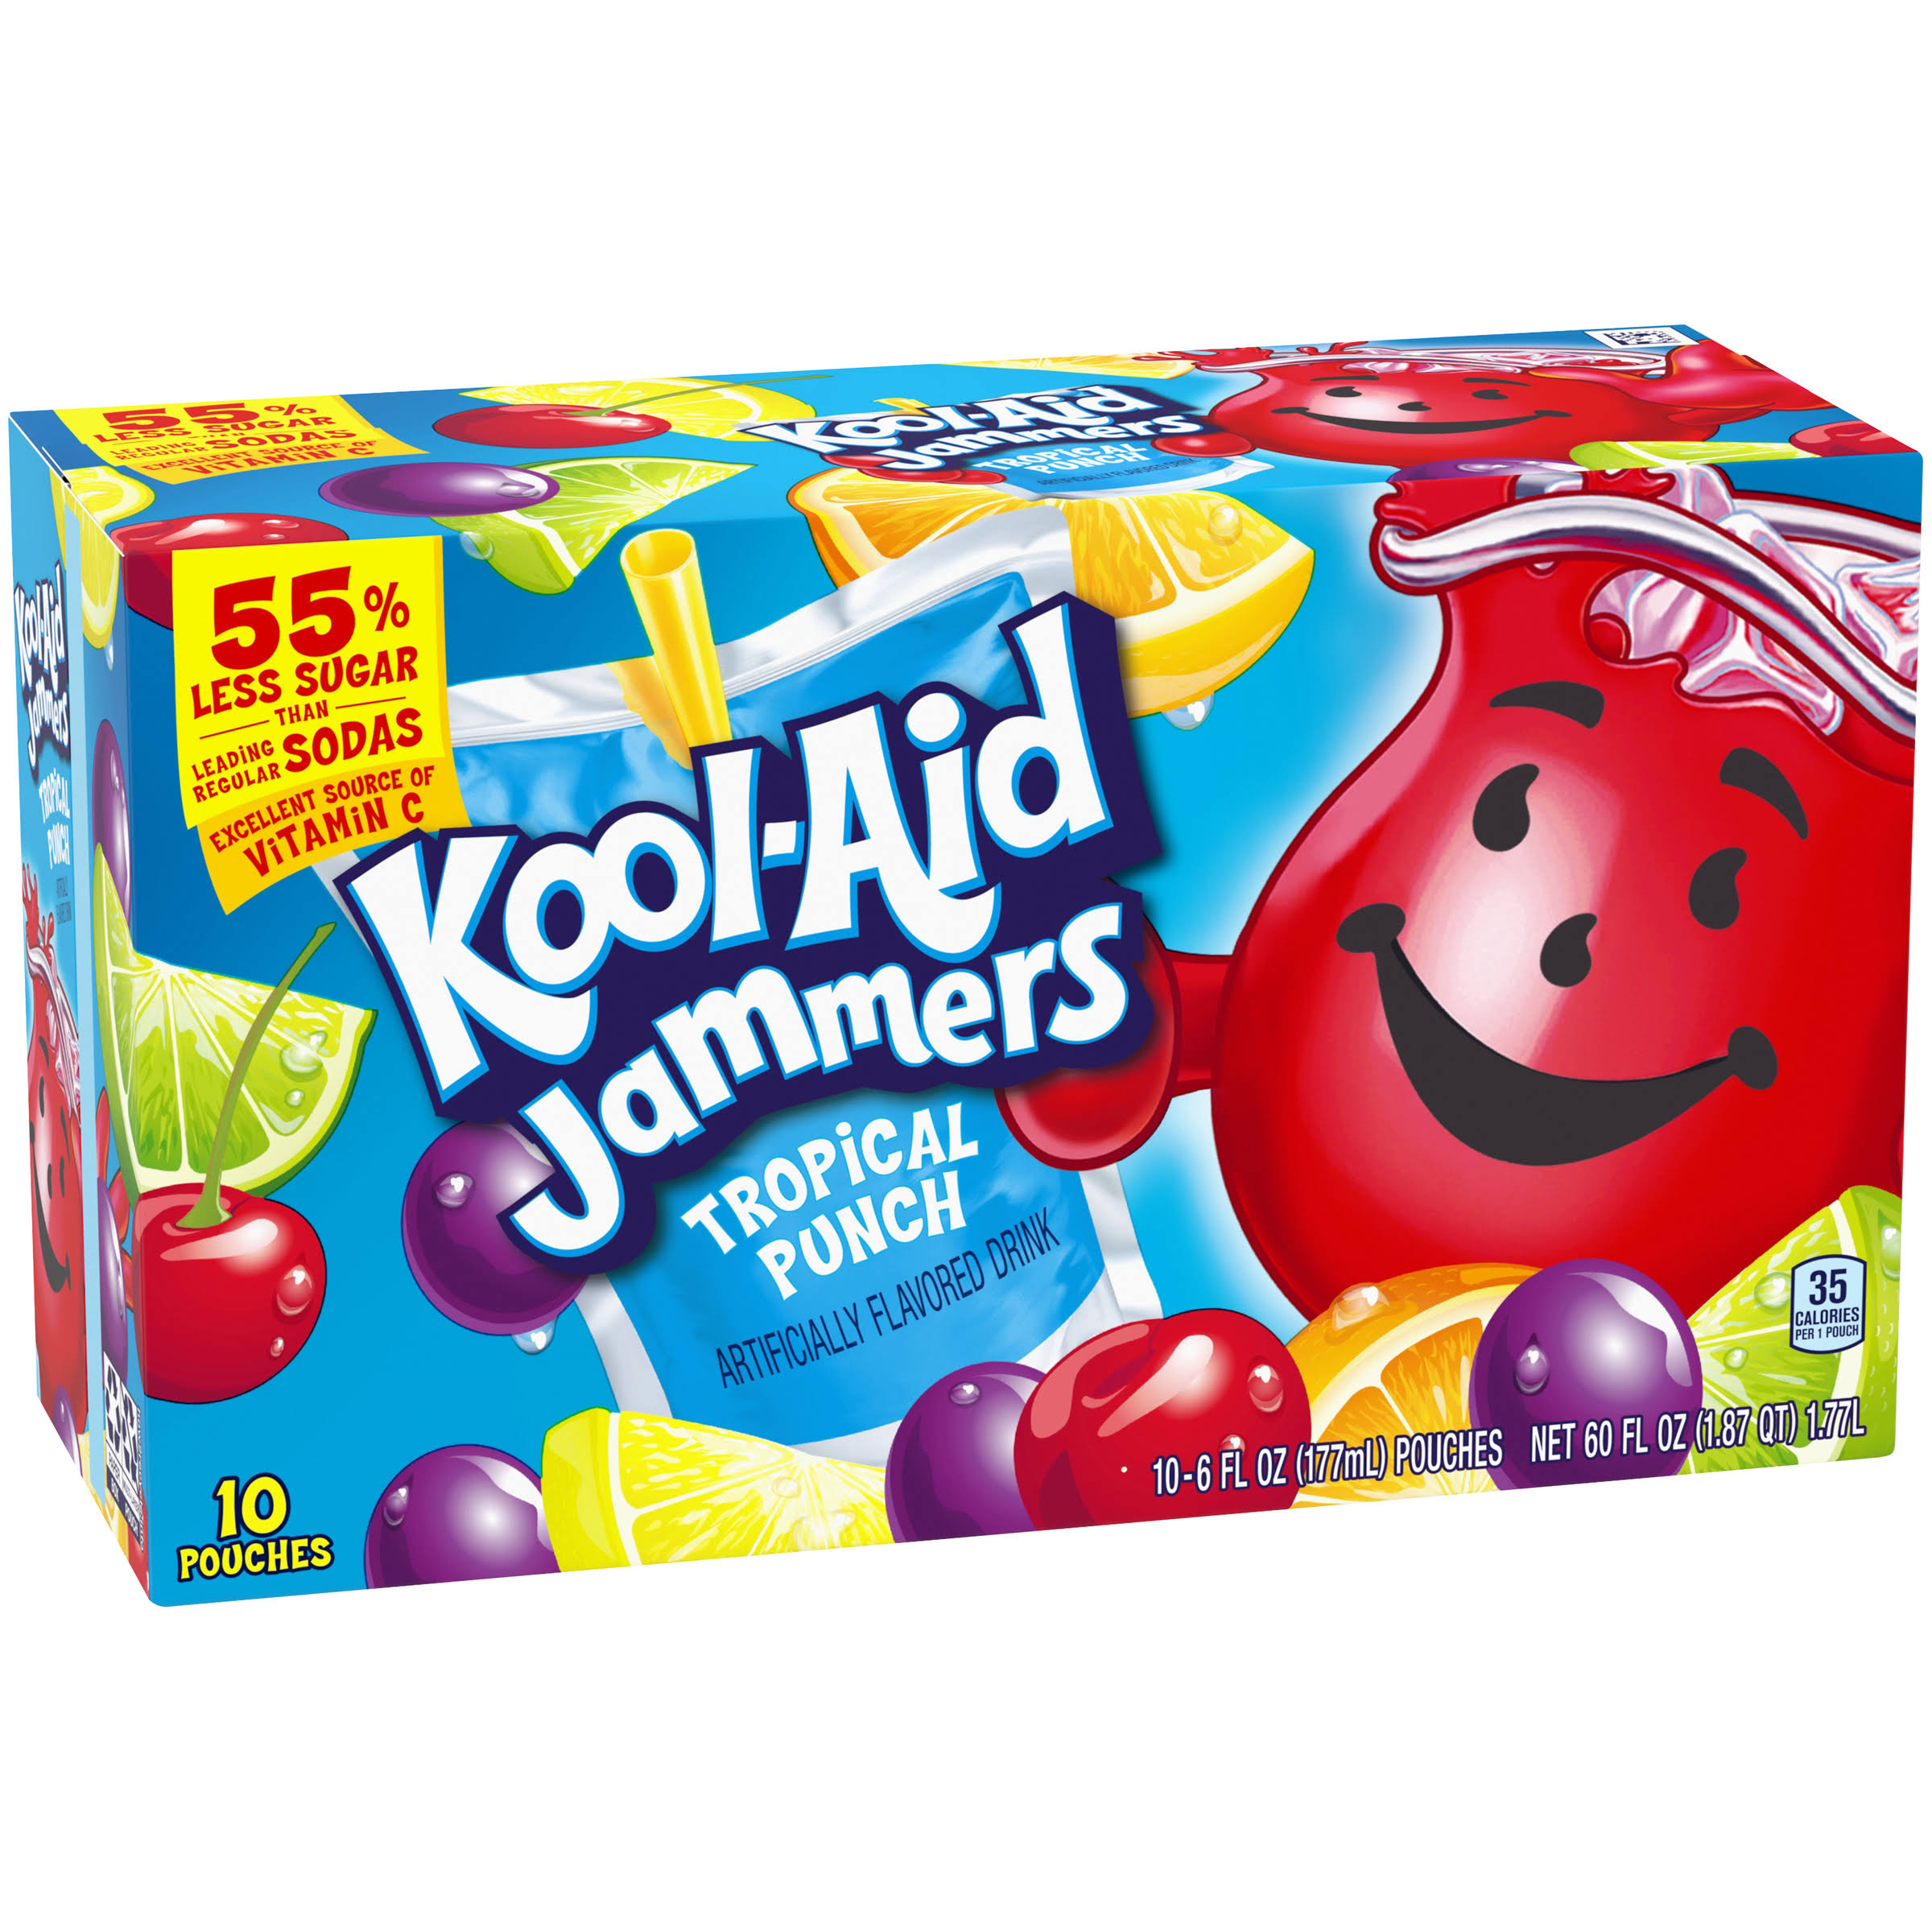 Kool-Aid Jammers Tropical Punch Artificially Flavored Drink - 6oz, 10pcs